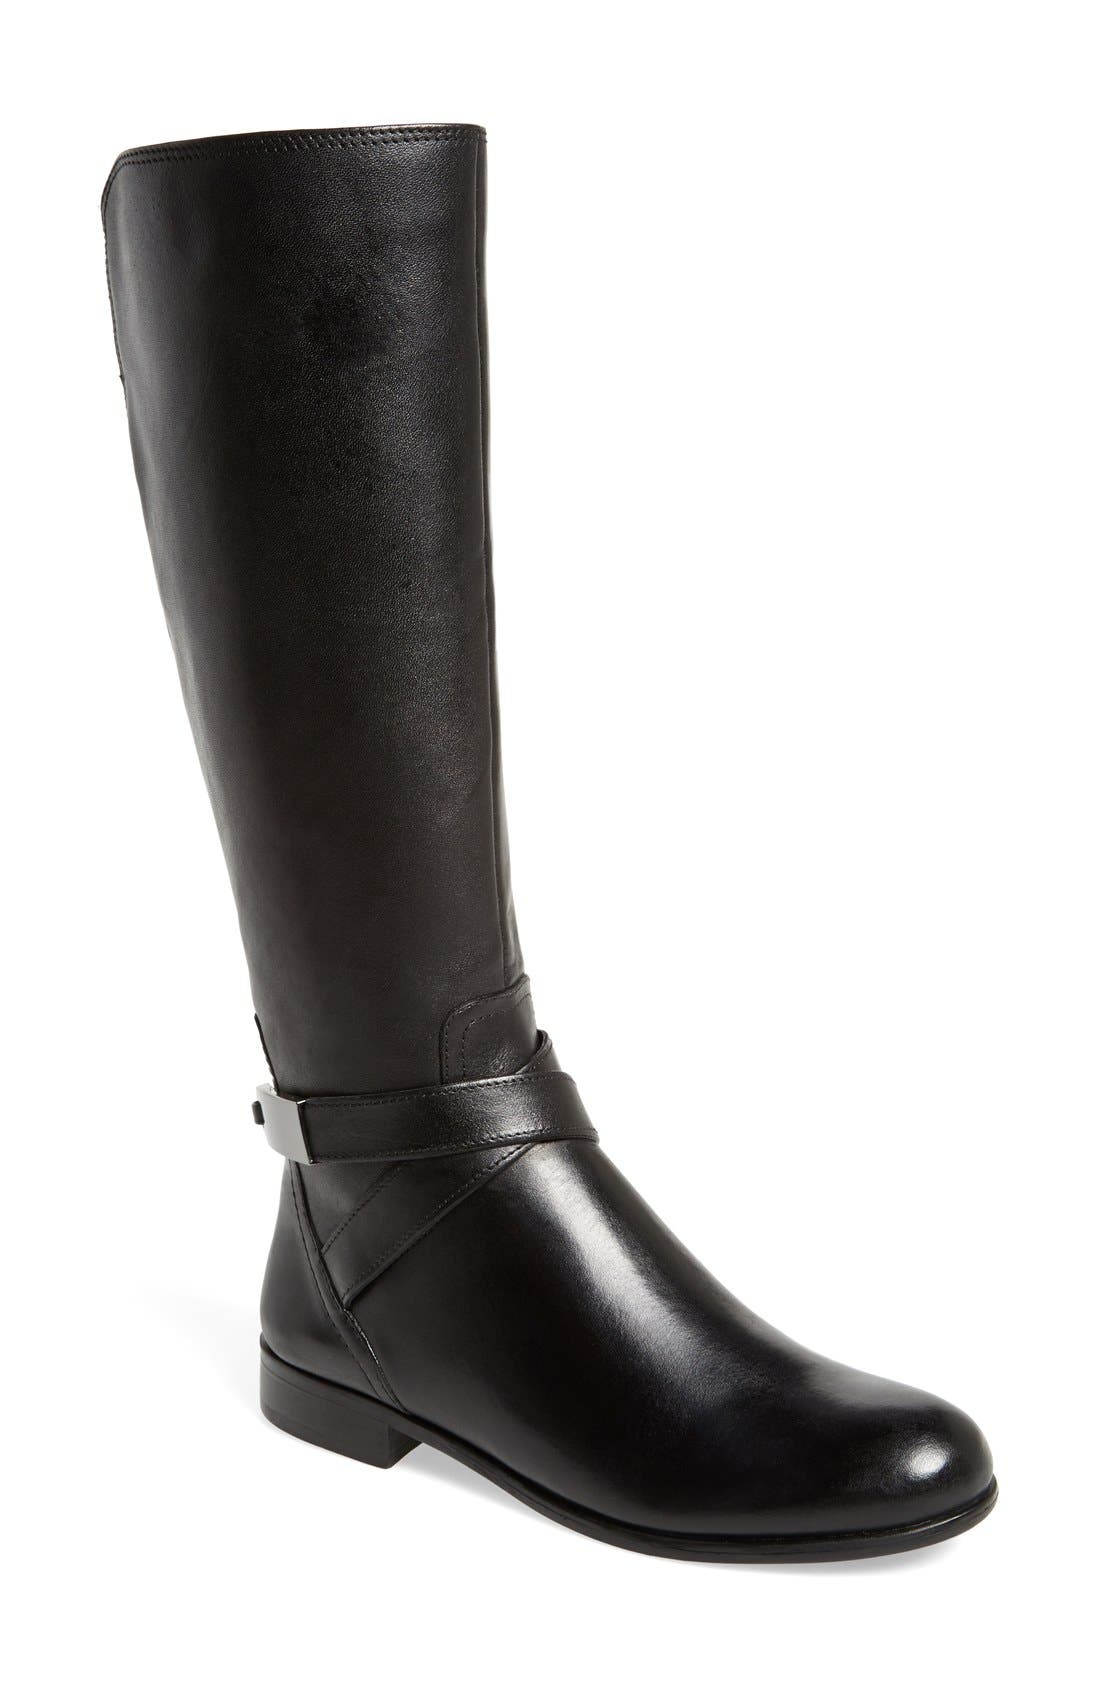 Alternate Image 1 Selected - Franco Sarto 'Majesta' Riding Boot (Women)